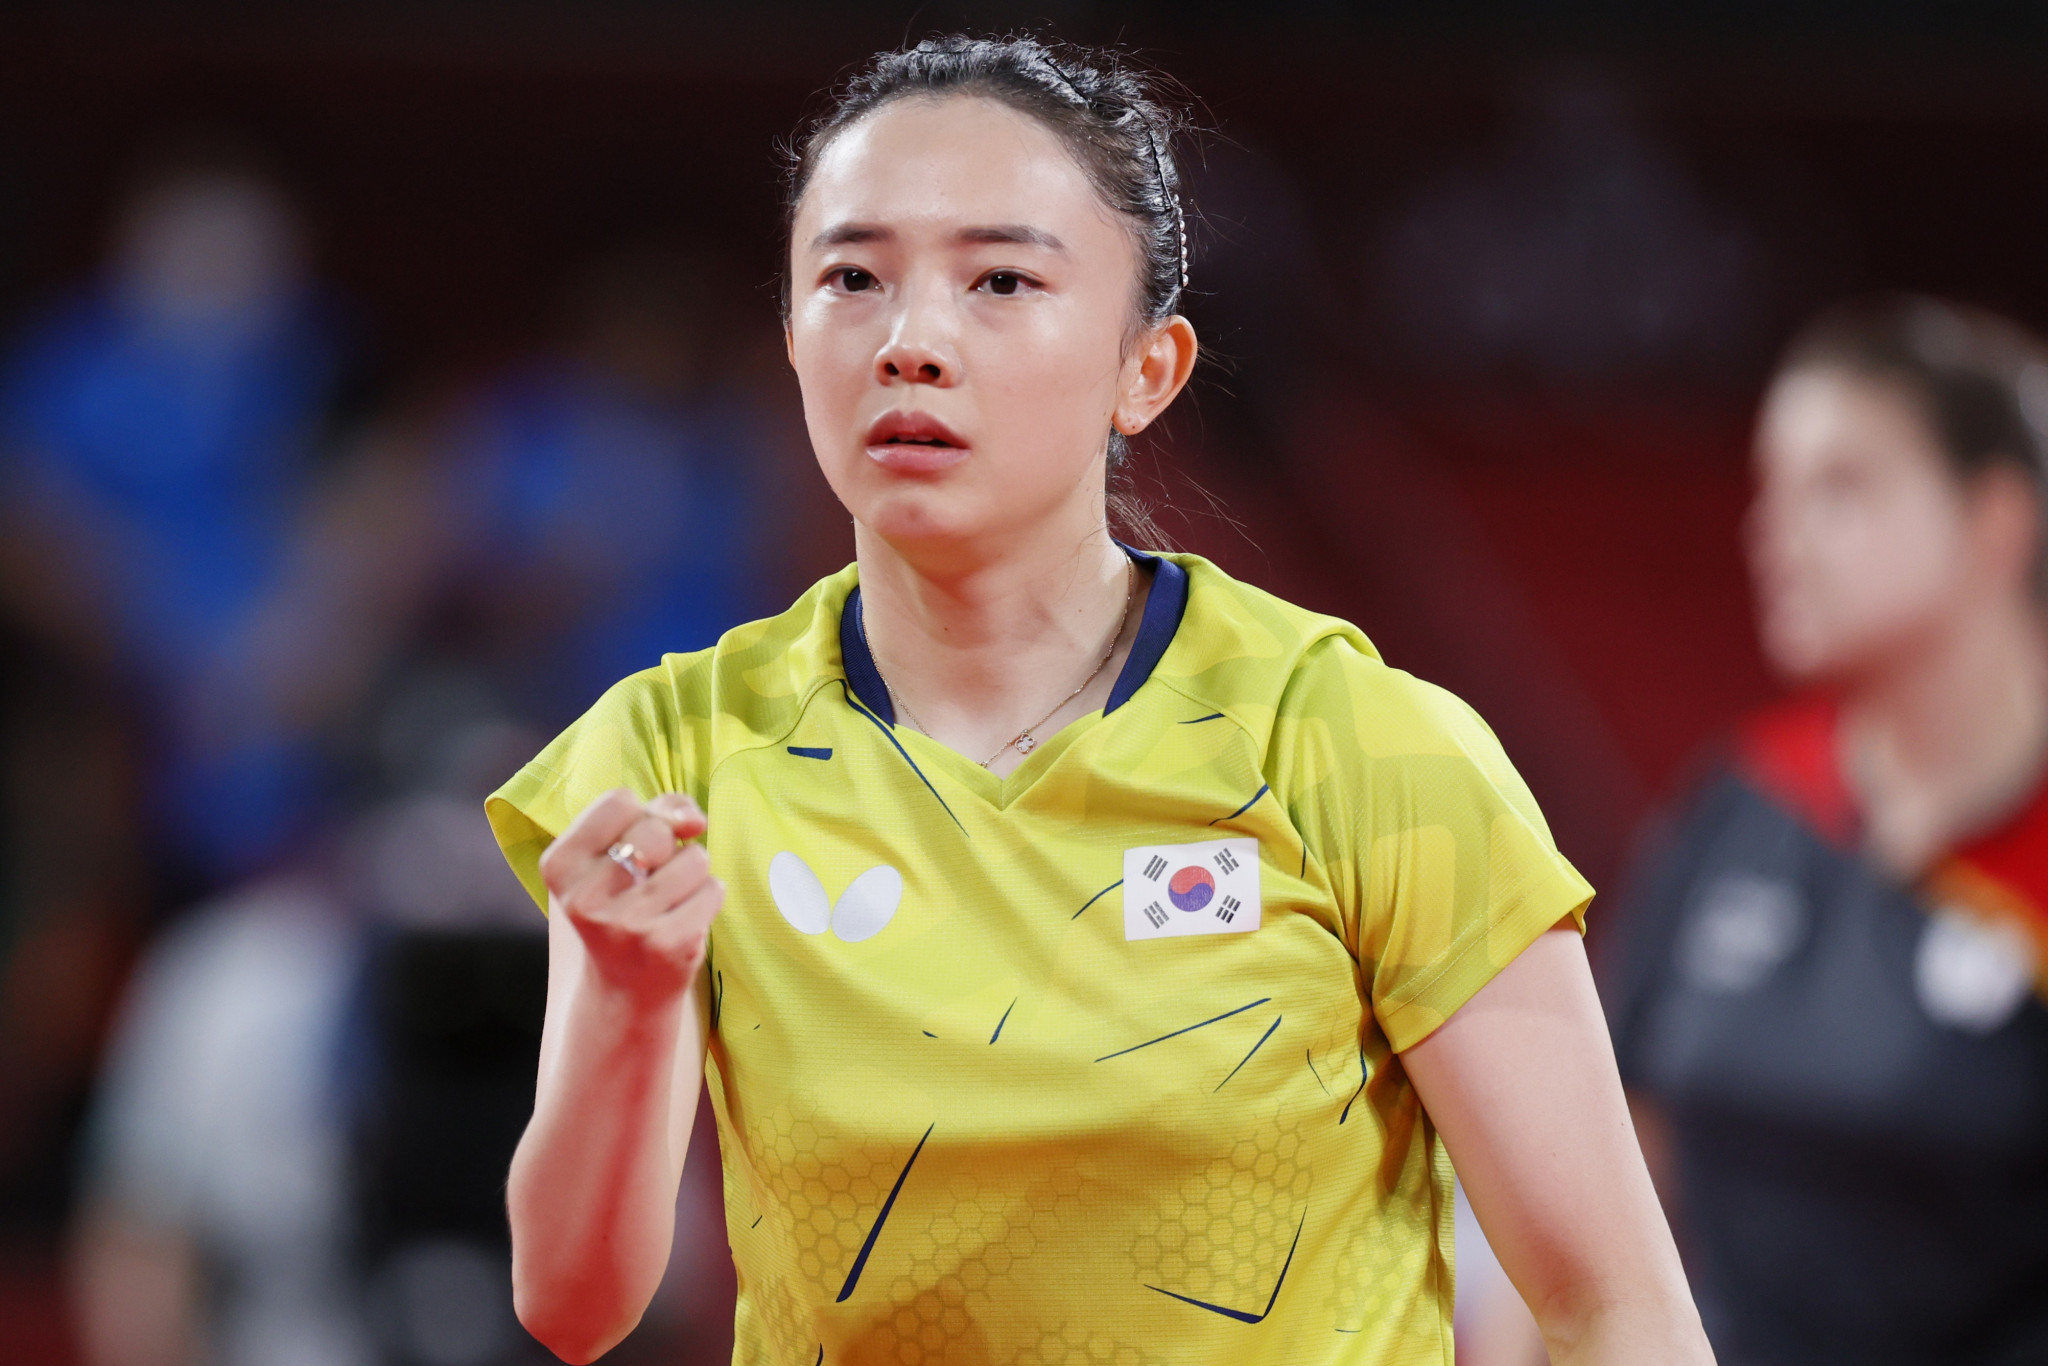 Top seed Jeon survives scare to advance to semis of WTT Star Contender Doha